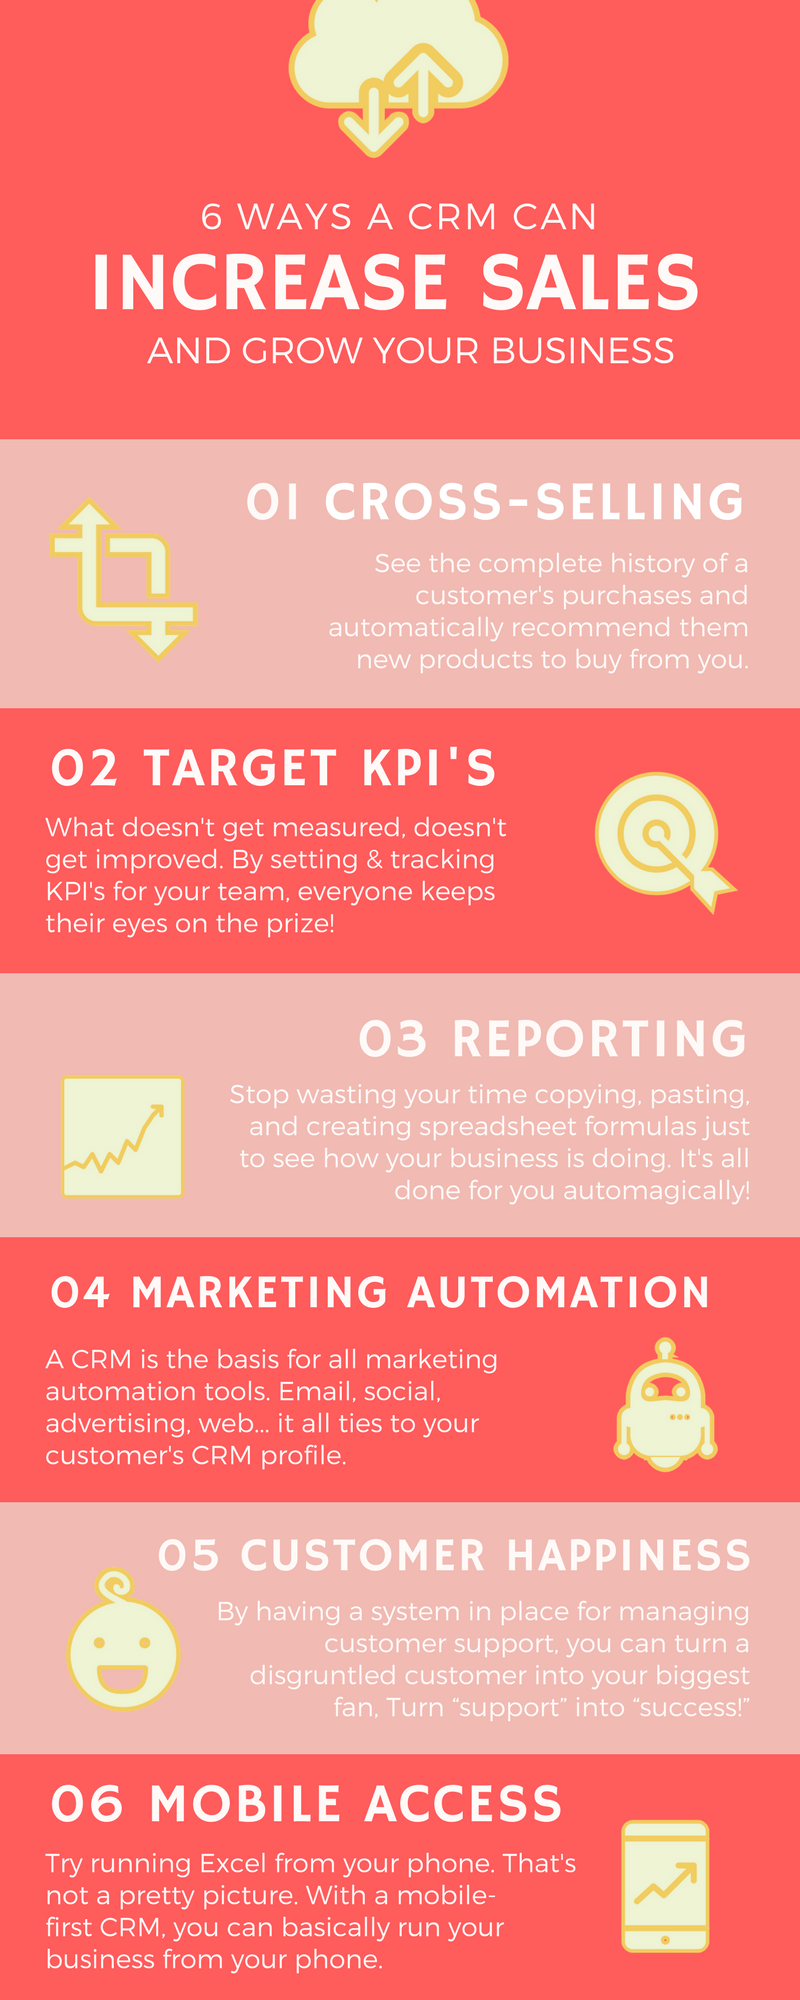 6 ways a CRM can increase sales and grow business infographic